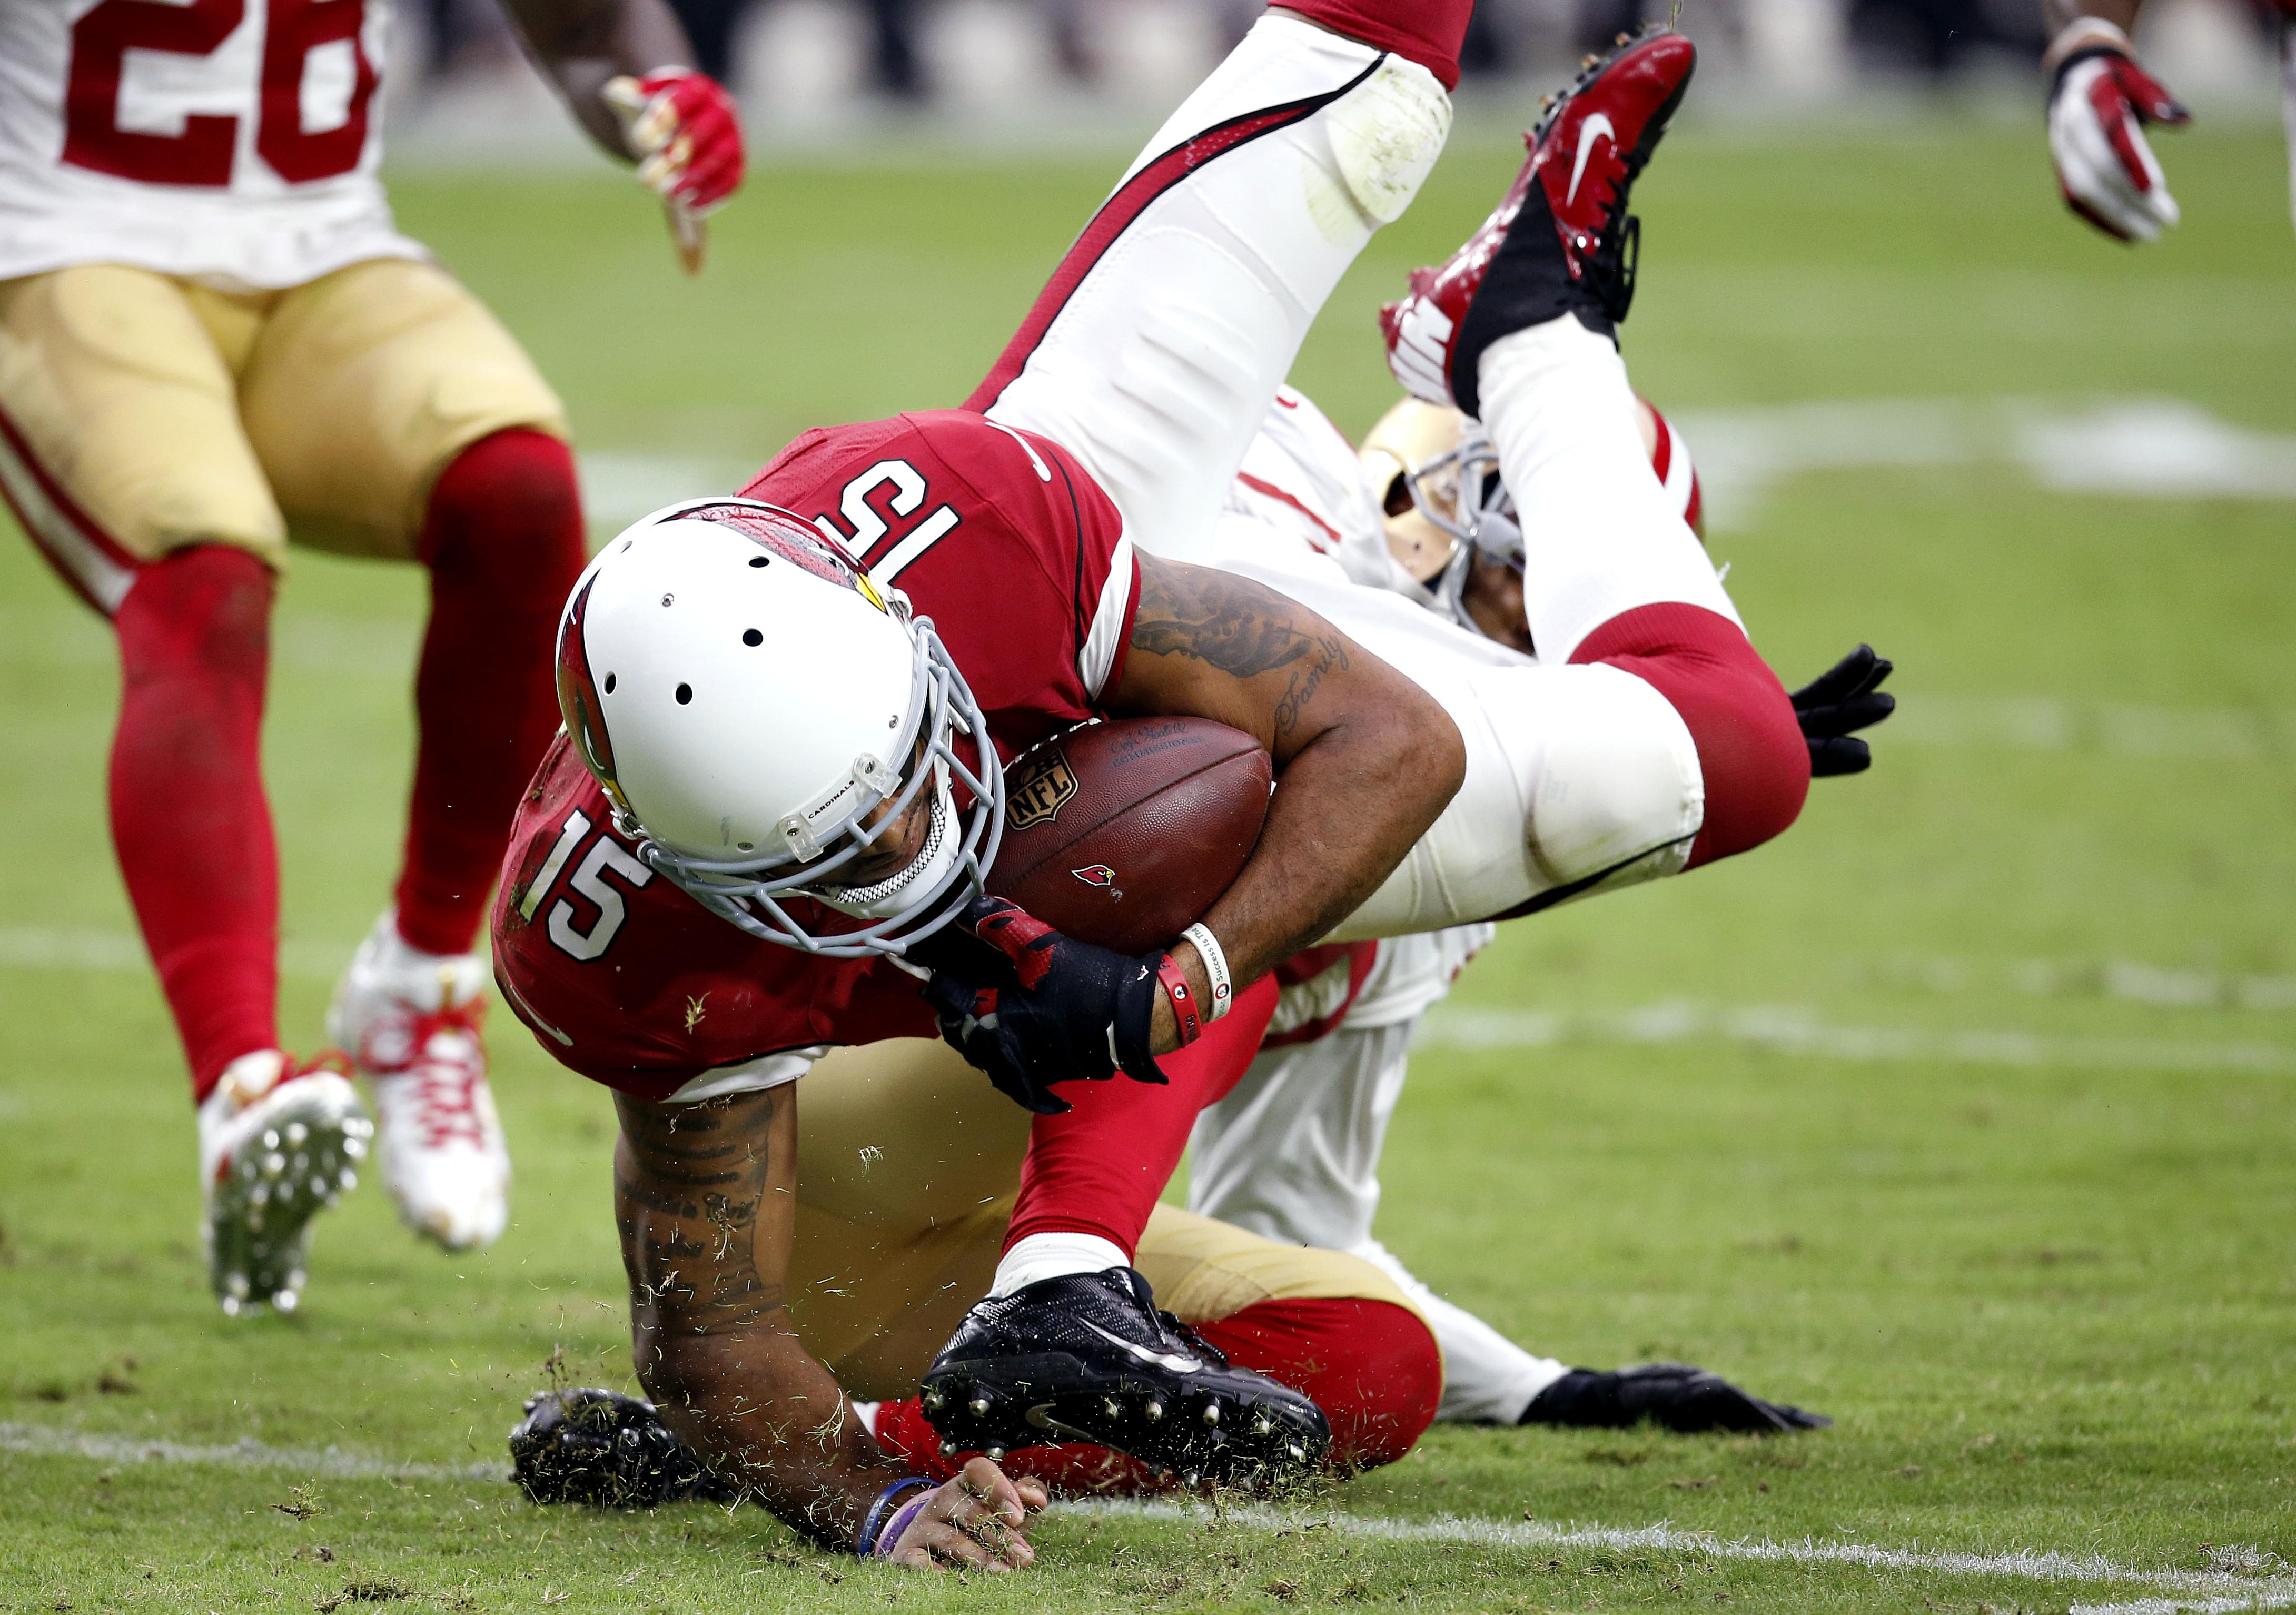 Arizona Cardinals wide receiver Michael Floyd (15) is tackled by San Francisco 49ers cornerback Kenneth Acker during the first half of an NFL football game, Sunday, Sept. 27, 2015, in Glendale, Ariz.  (AP Photo/Ross D. Franklin)